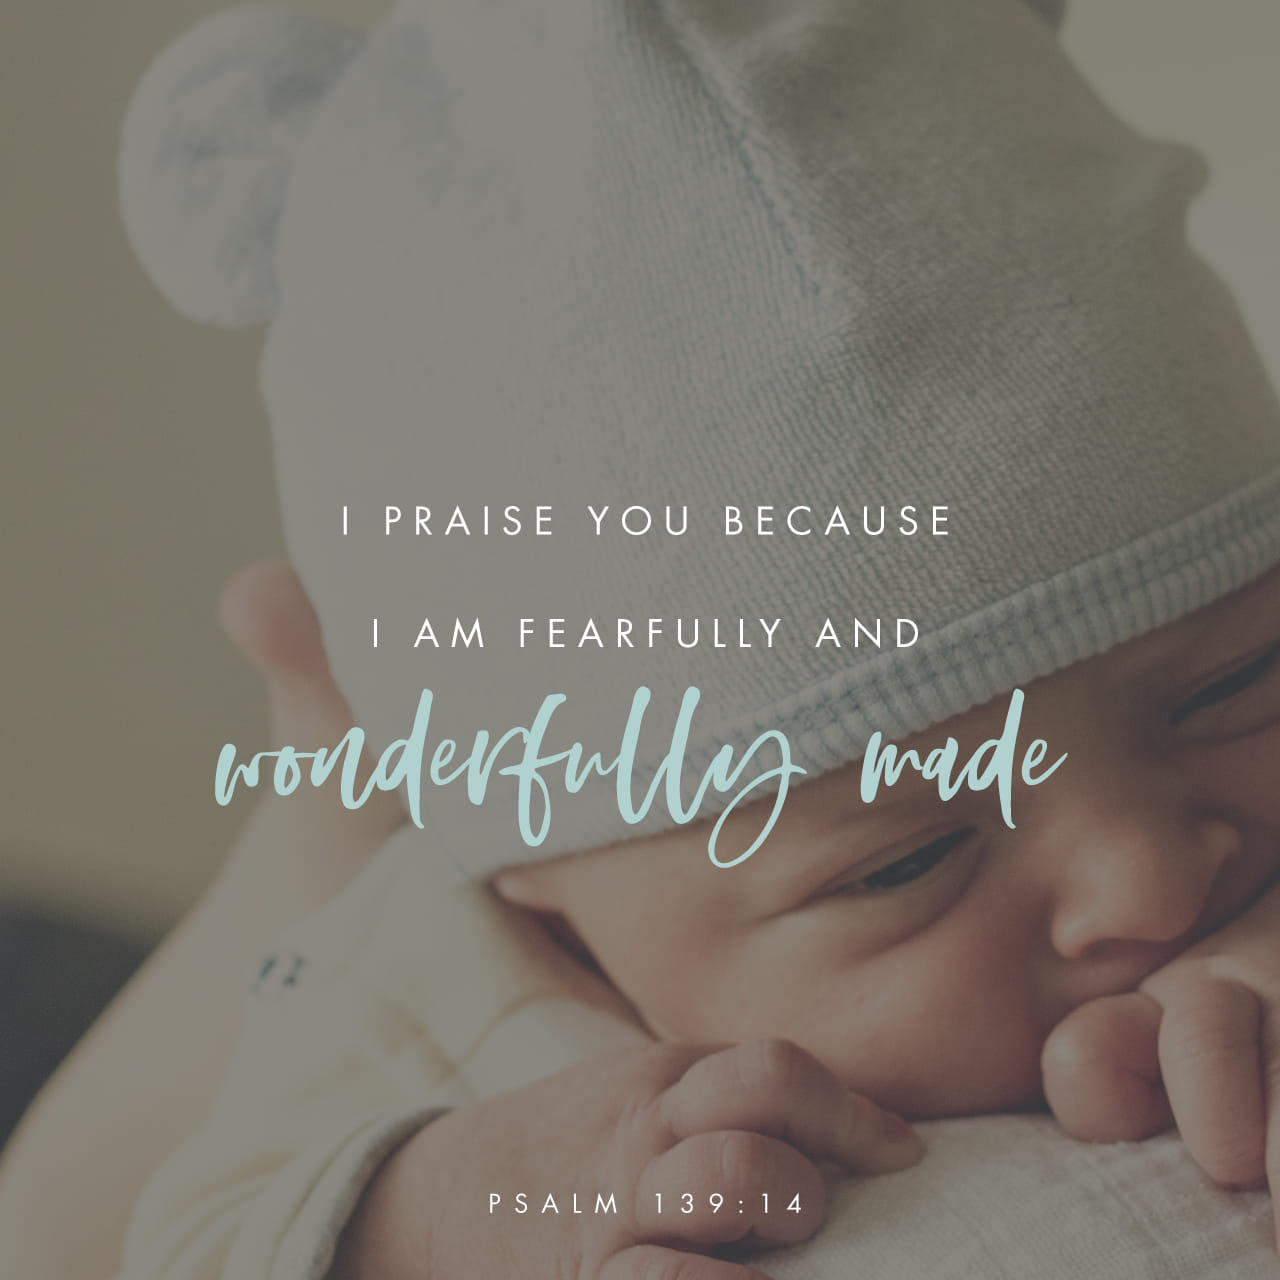 Psalms 139:13-14 For thou hast possessed my reins: thou hast covered me in my mother's womb. I will praise thee; for I am fearfully and wonderfully made: marvellous are thy works; and that my soul knoweth right well. | King James Version (KJV)